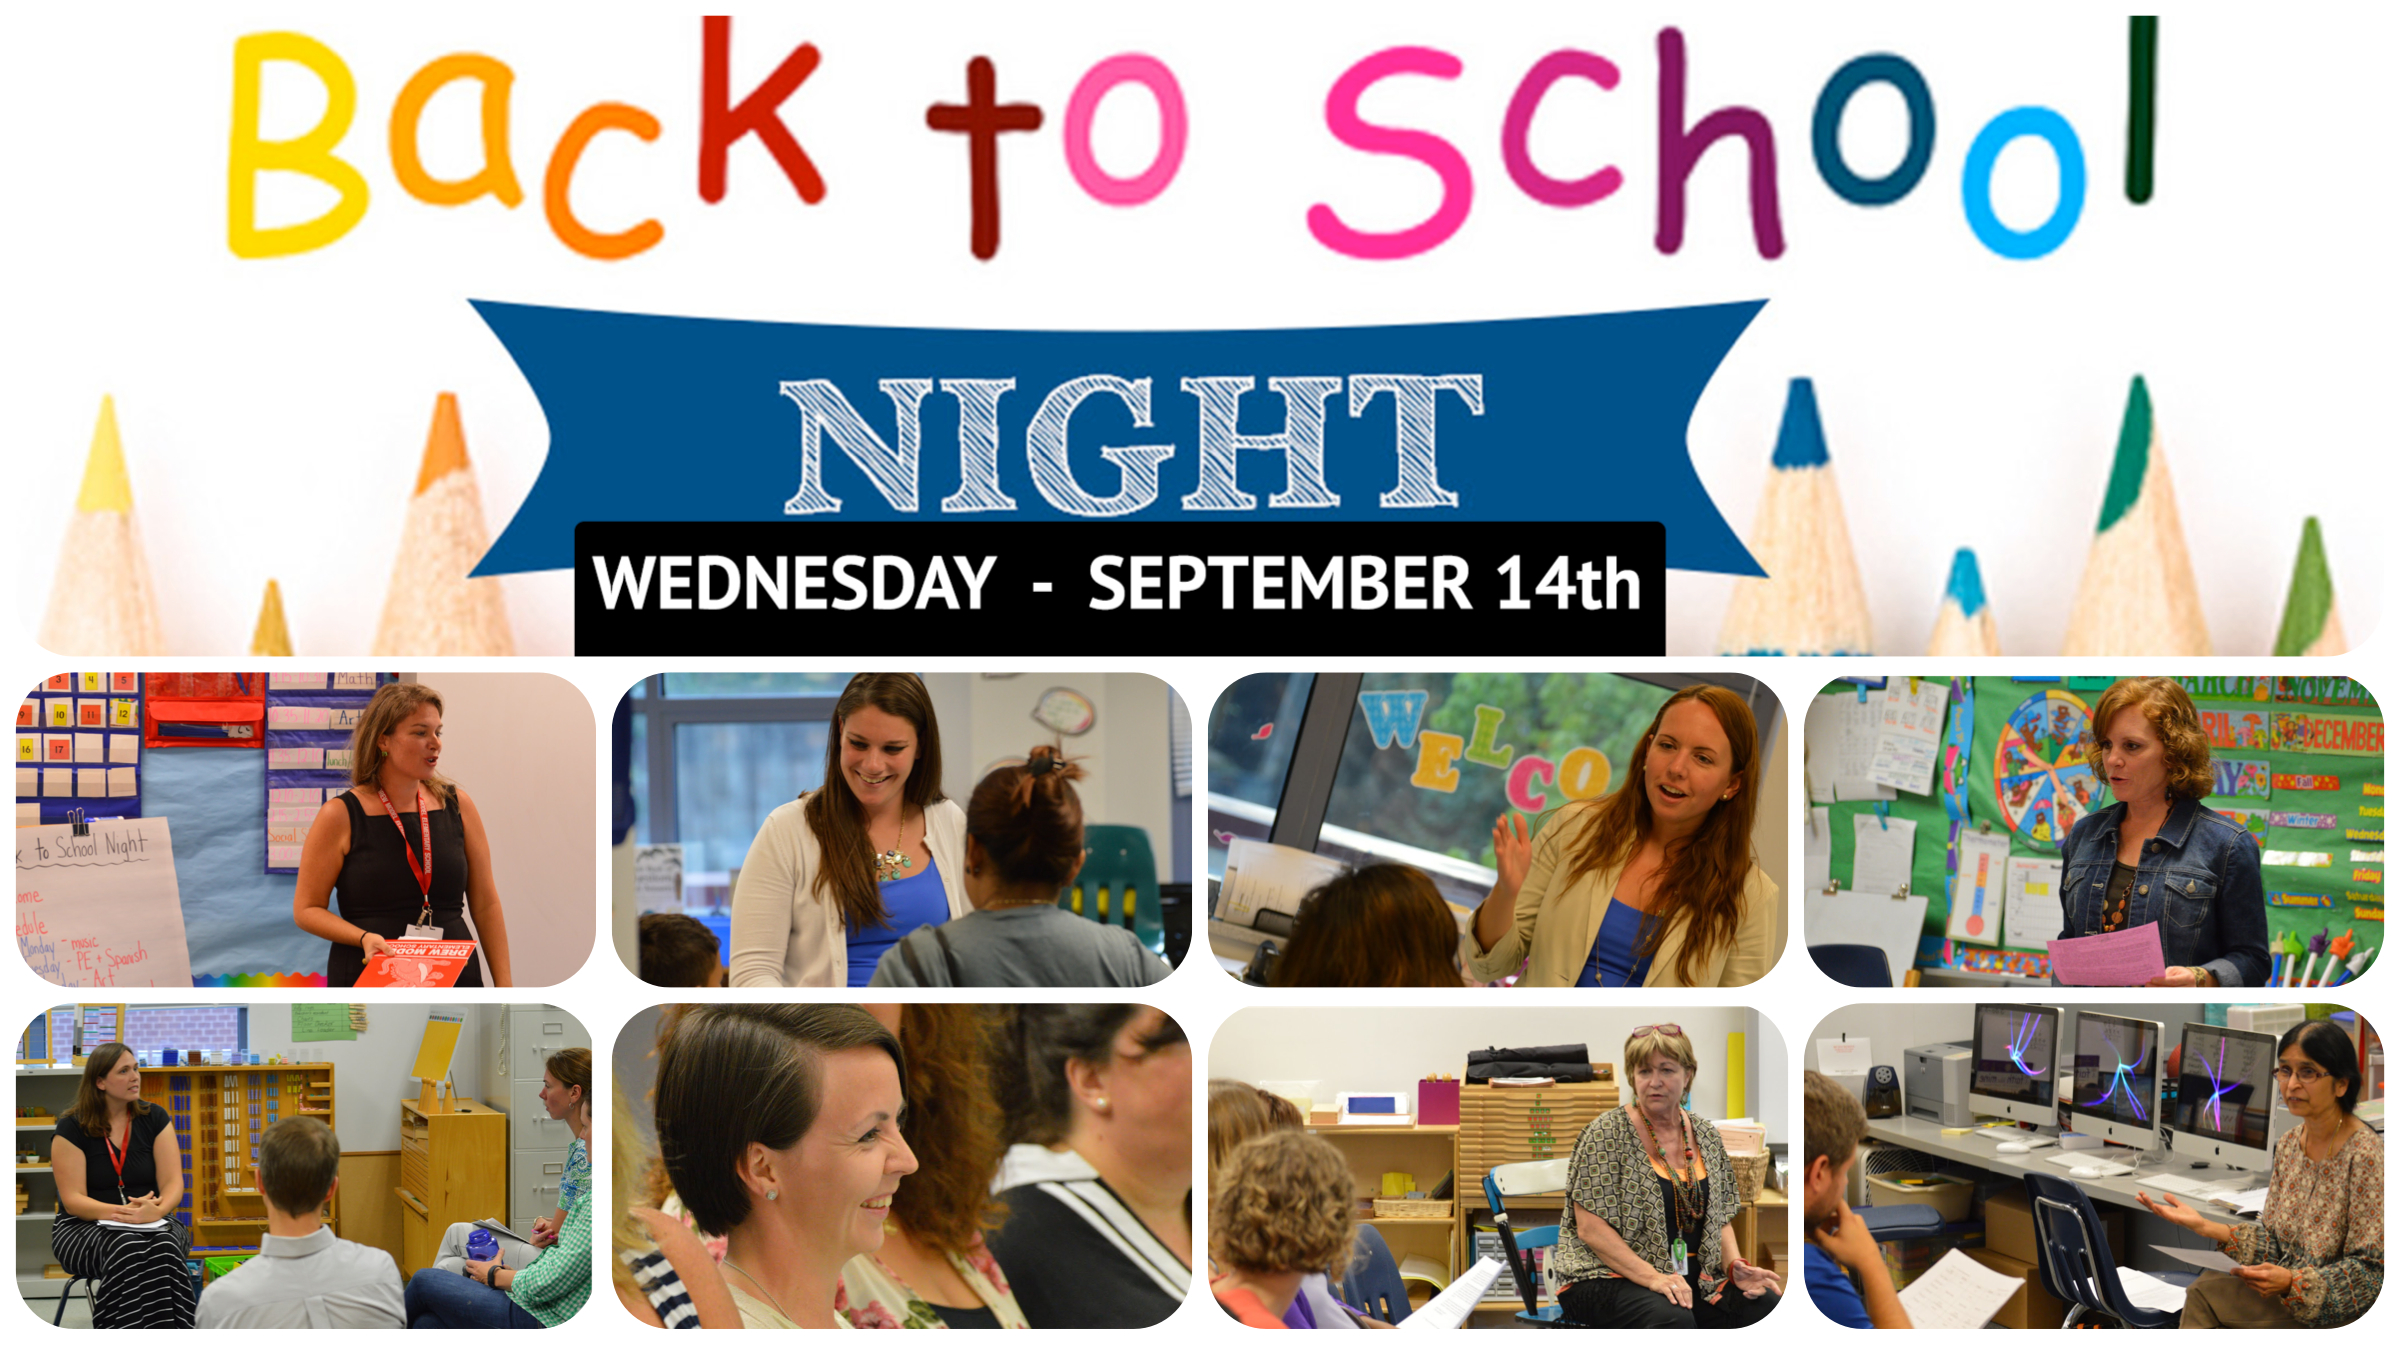 Back to School Night Coming!